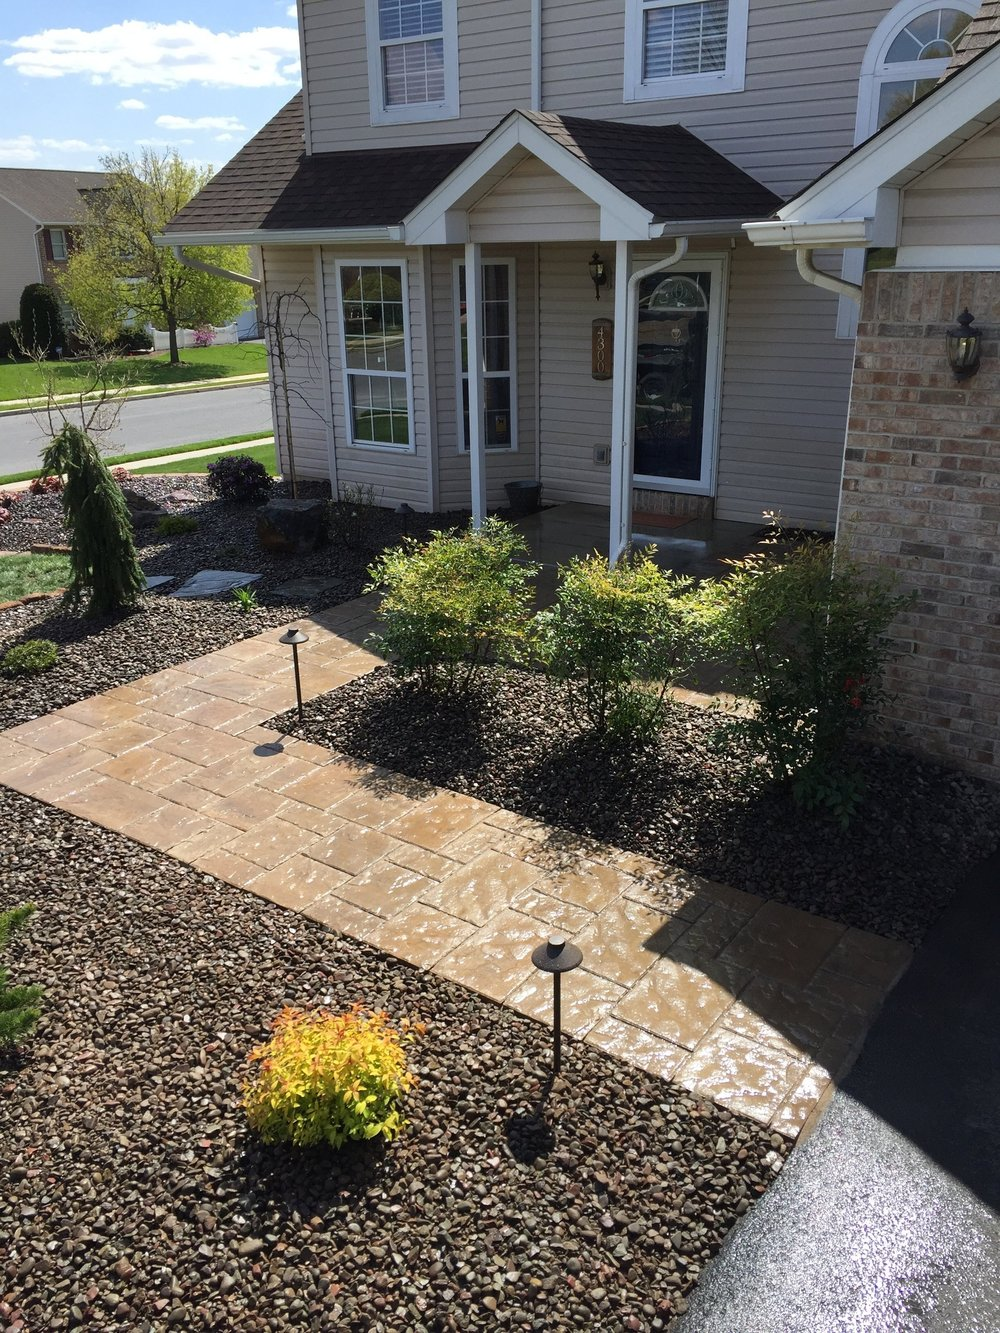 Professional landscape design in Lehigh county, PA